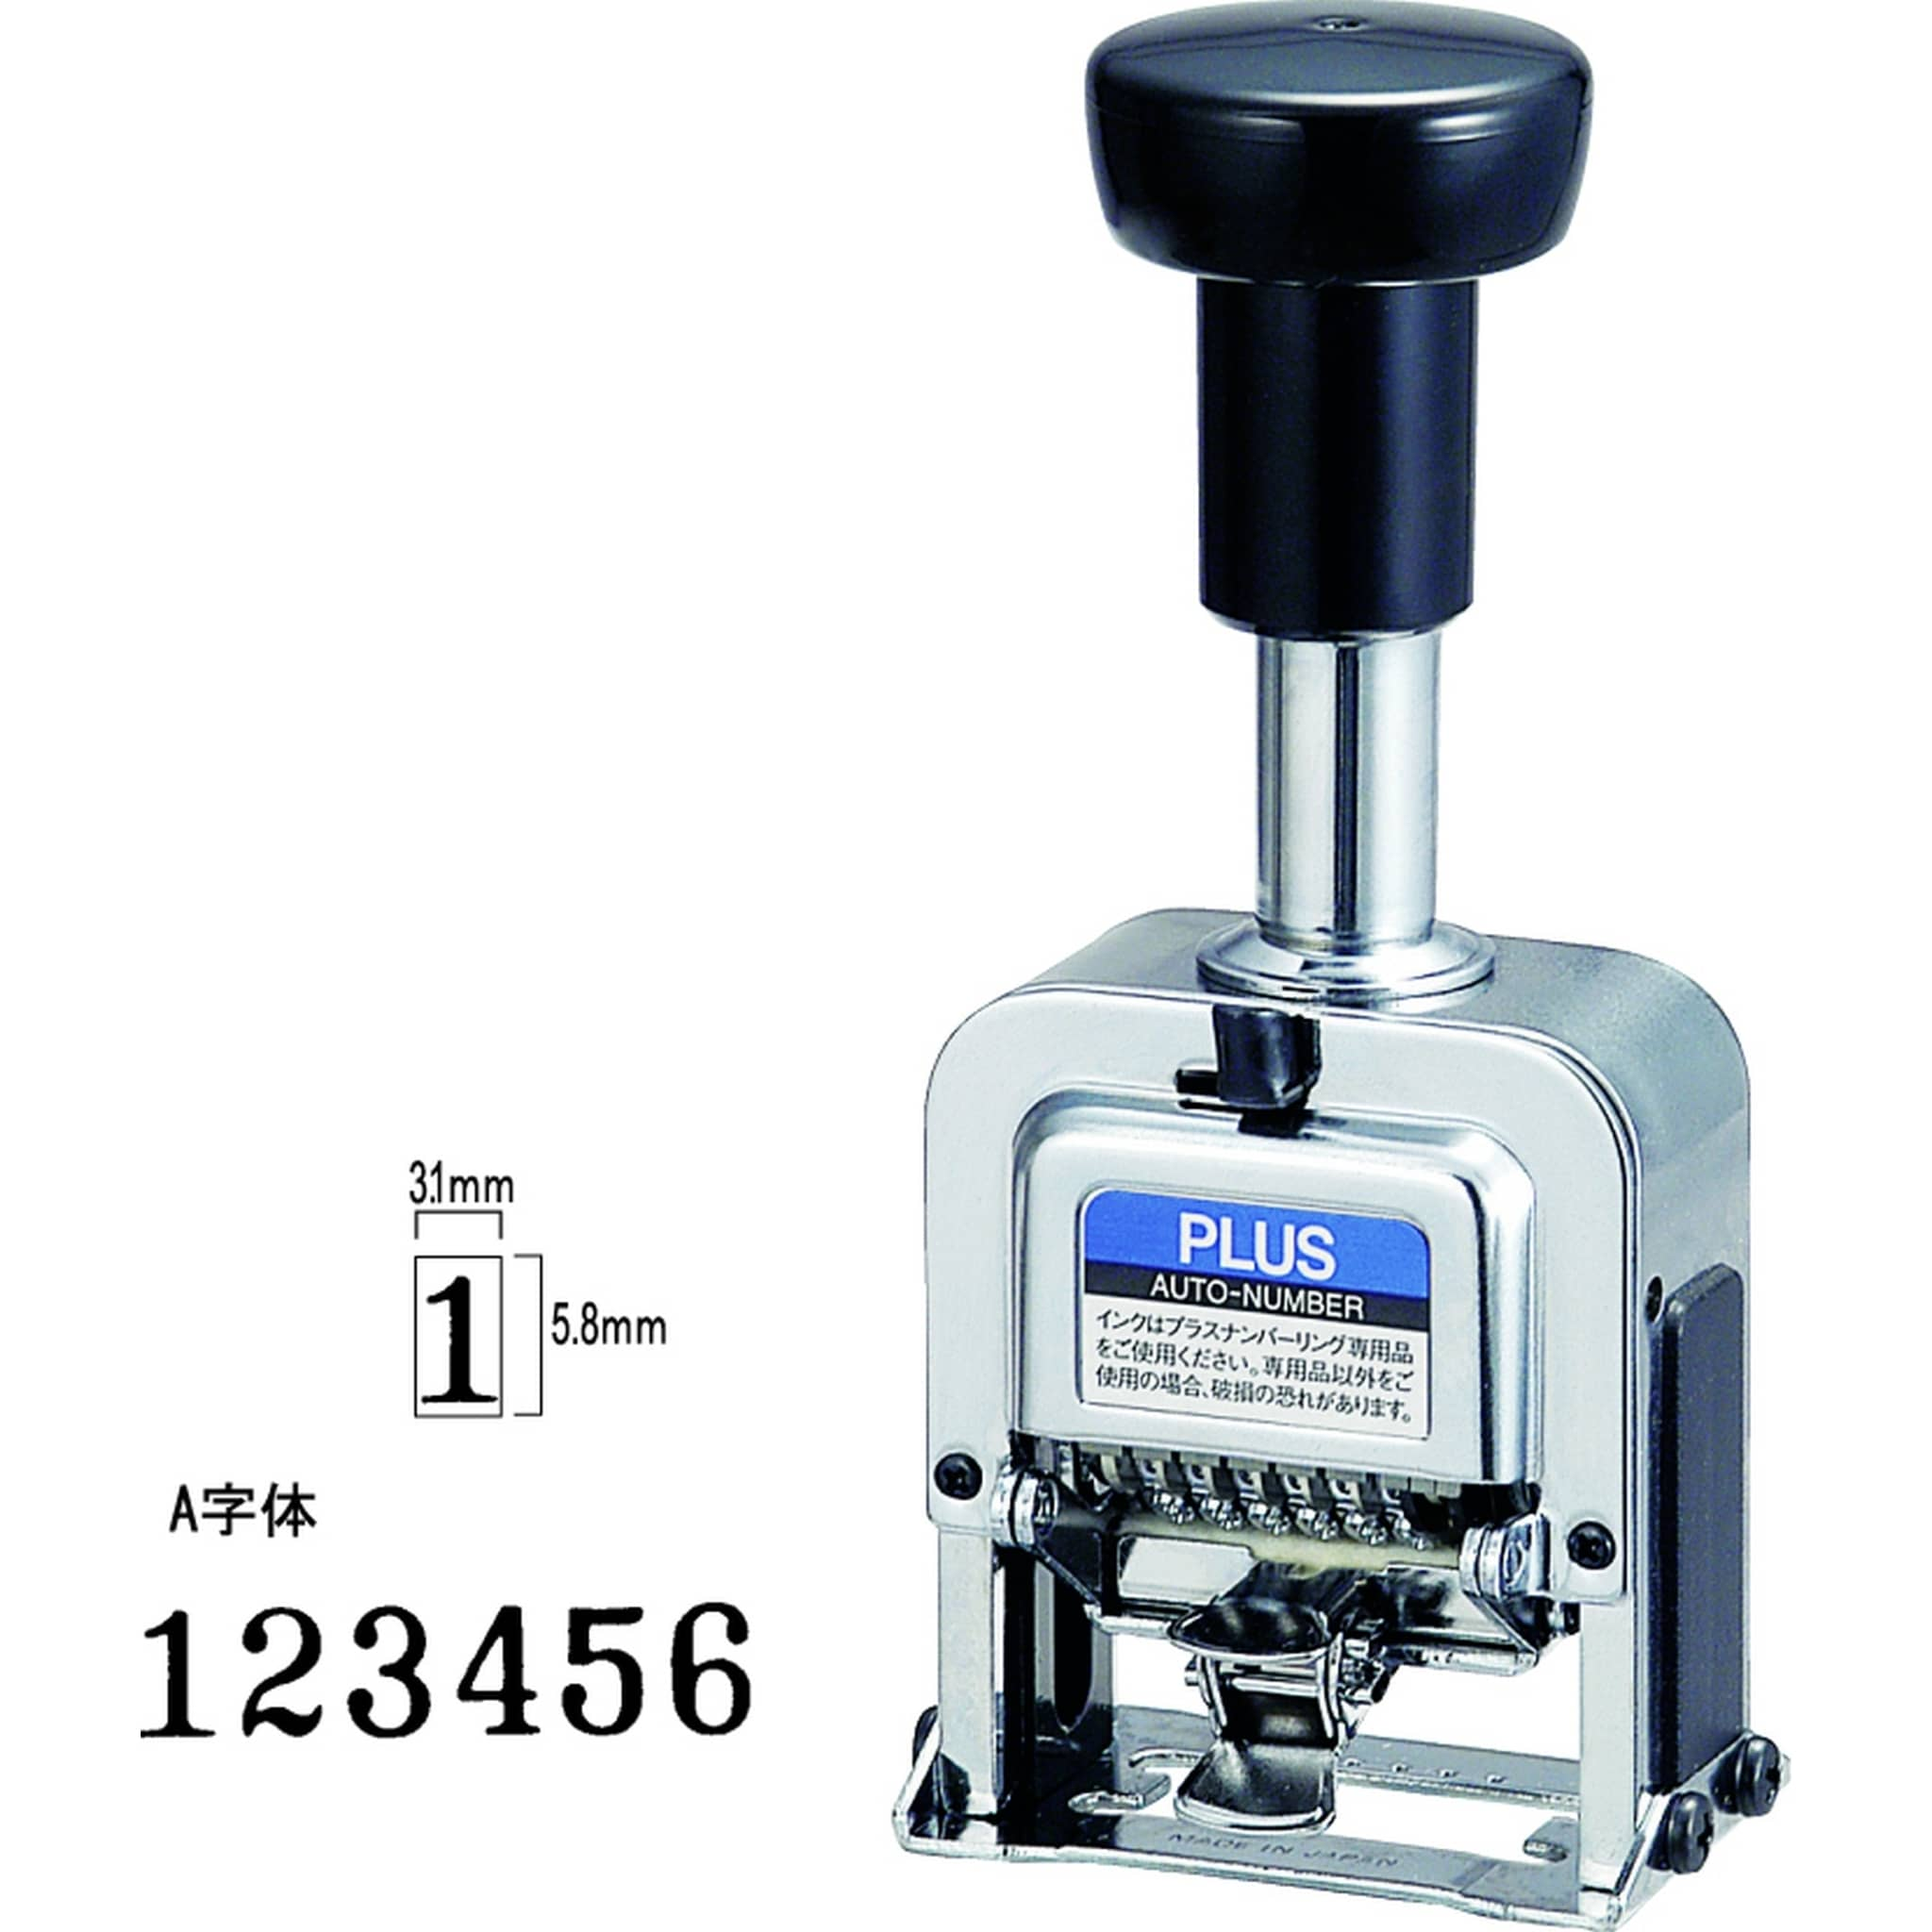 PLUS A 6 Wheel Automatic Numbering Machine $199.80 incl. gst